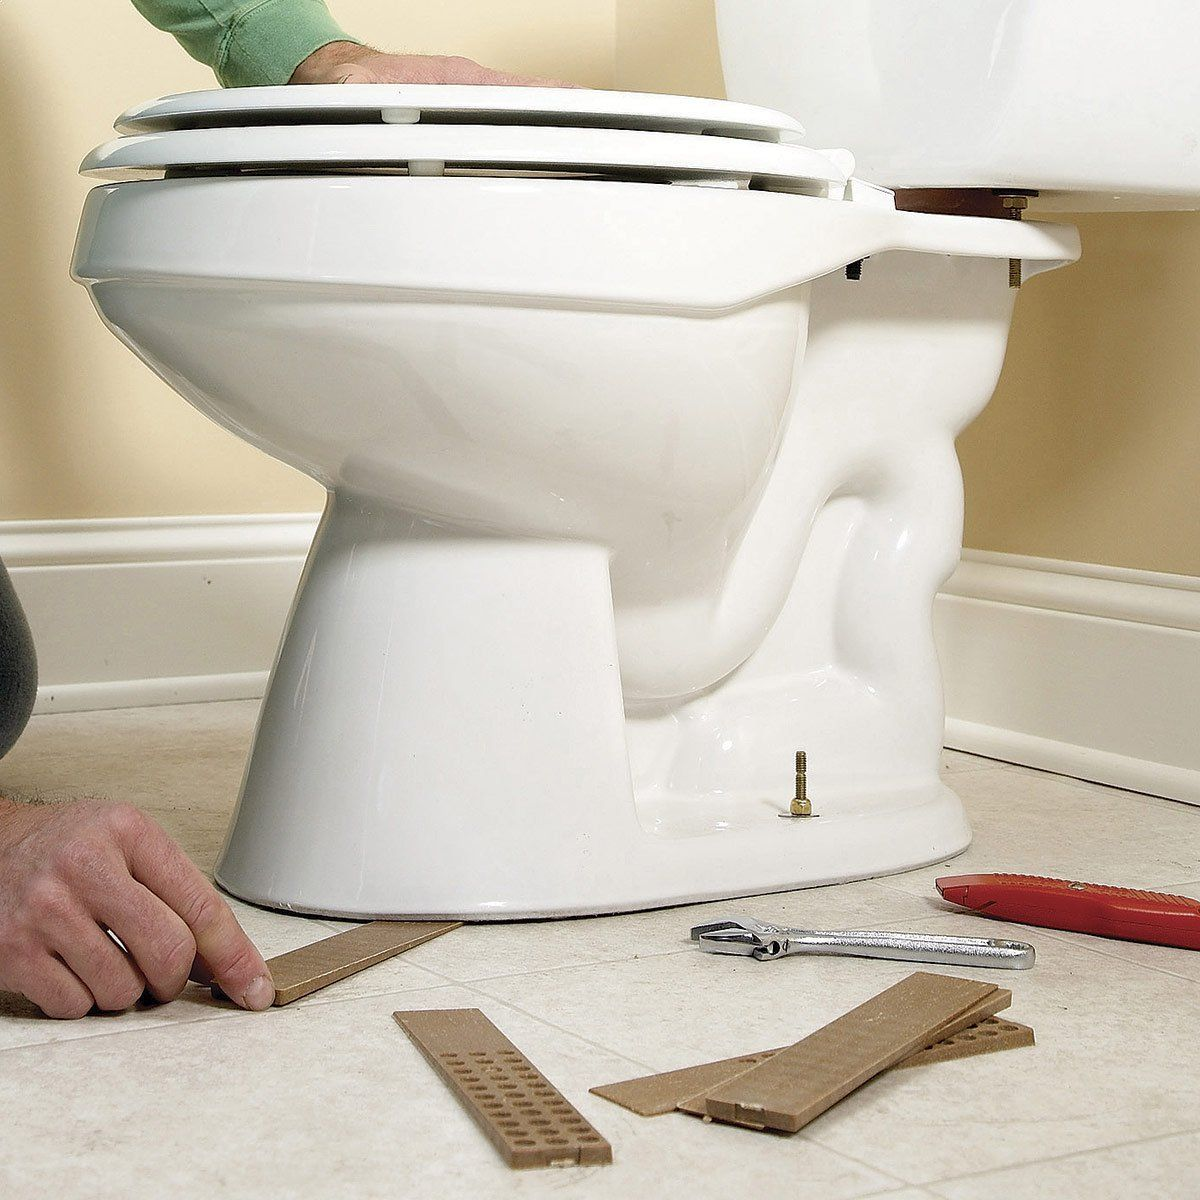 14 Toilet Problems You Ll Regret Ignoring With Images Toilet